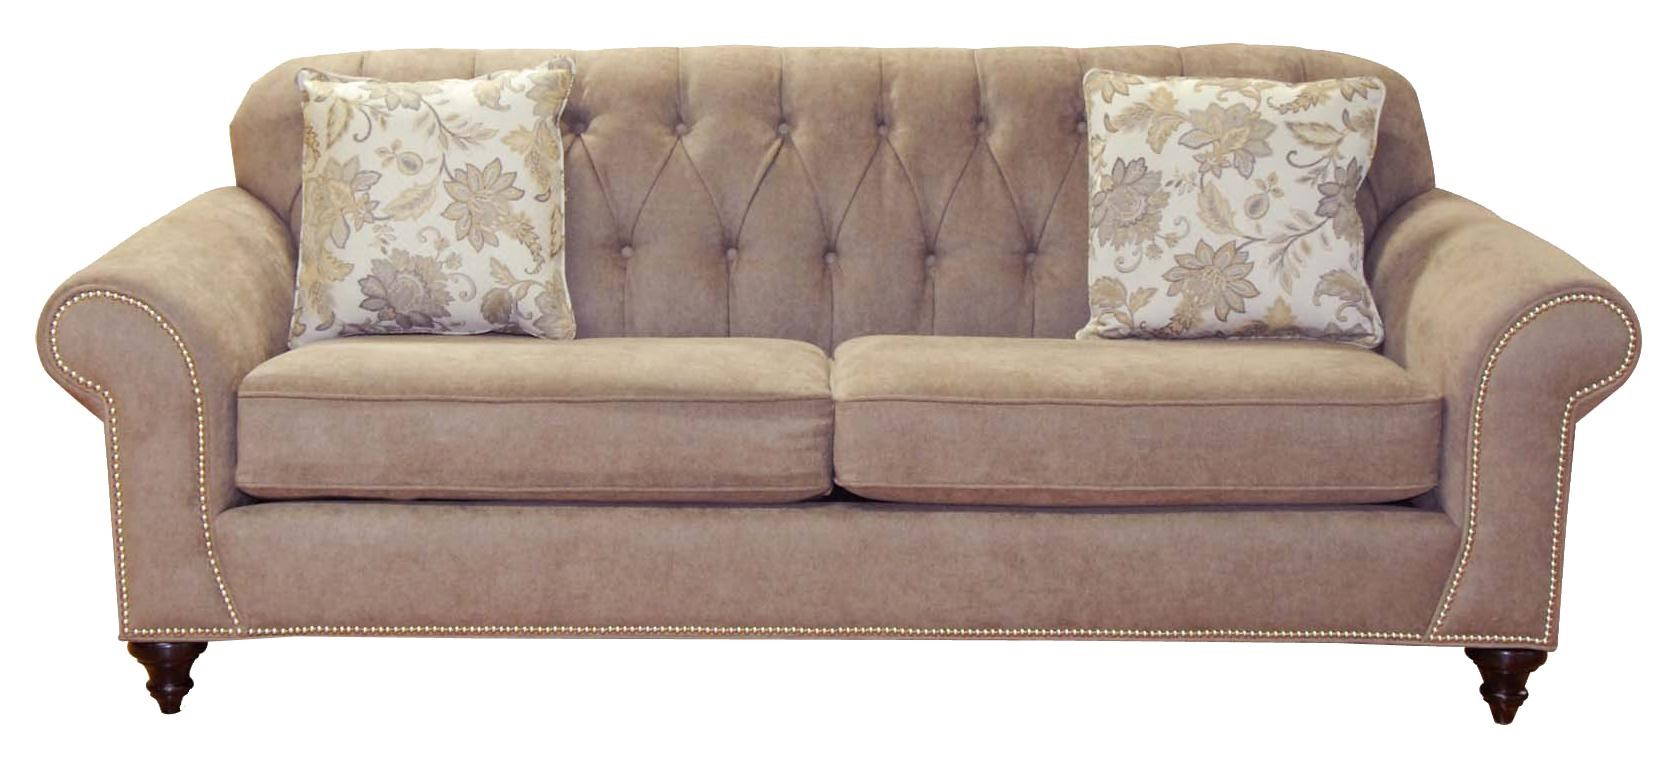 colders living room furniture. england stacy sofa with nailheads and button tufted seat back colders living room furniture r